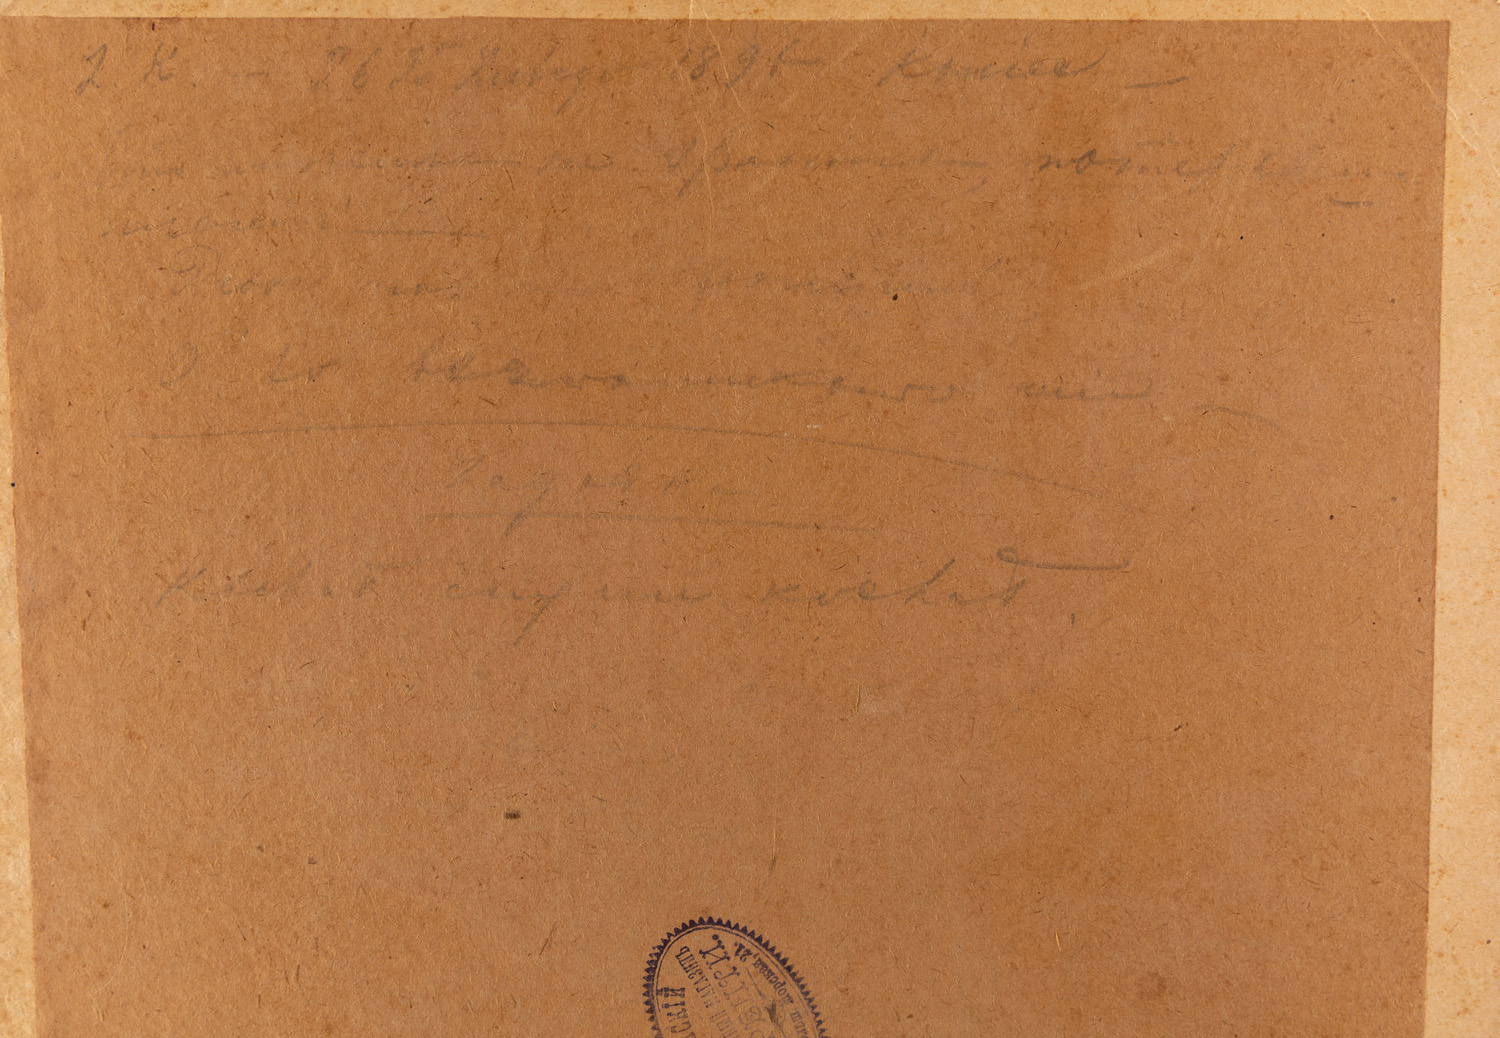 A GROUP OF THREE LANDSCAPE DRAWINGS BY NIKOLAI LANCERAY (RUSSIAN 1879-1942) - Image 10 of 10